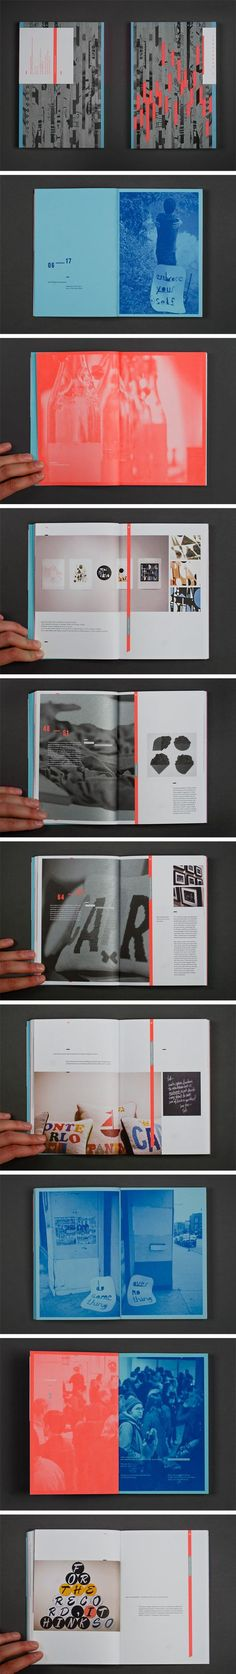 Typeforce 2 Exhibition Catalogue: